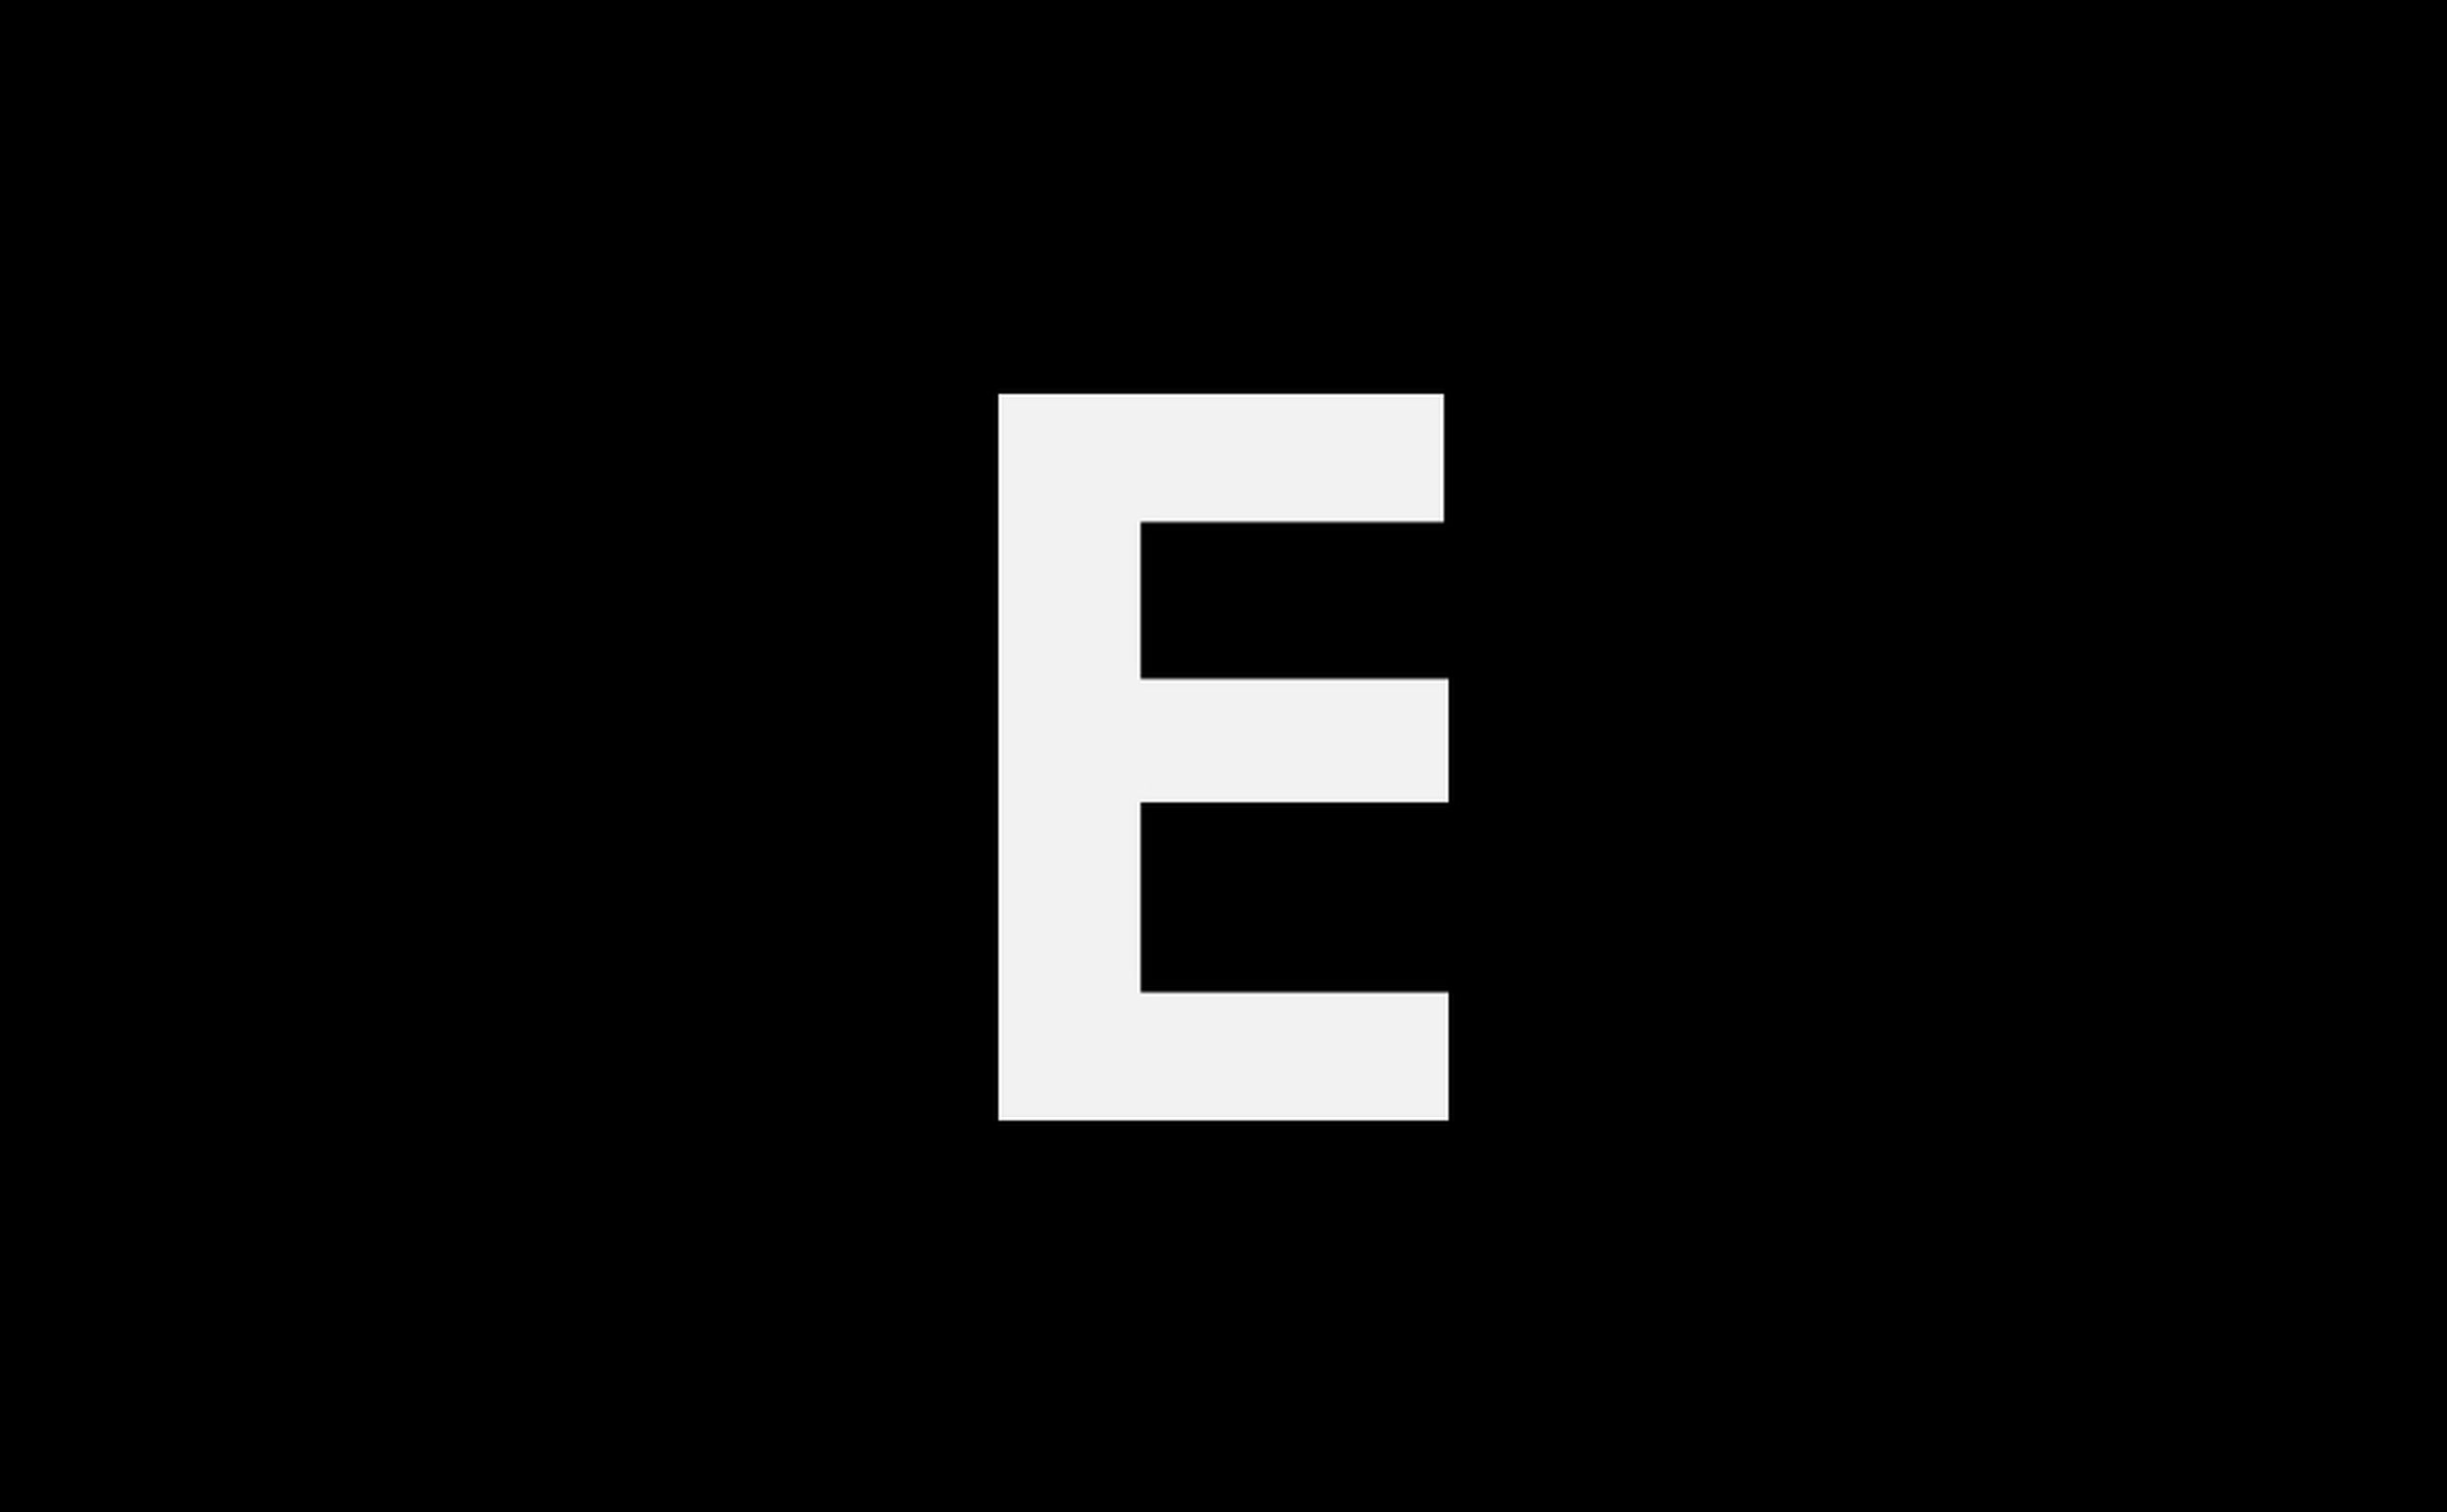 LOW ANGLE VIEW OF ILLUMINATED LAMP IN DARK